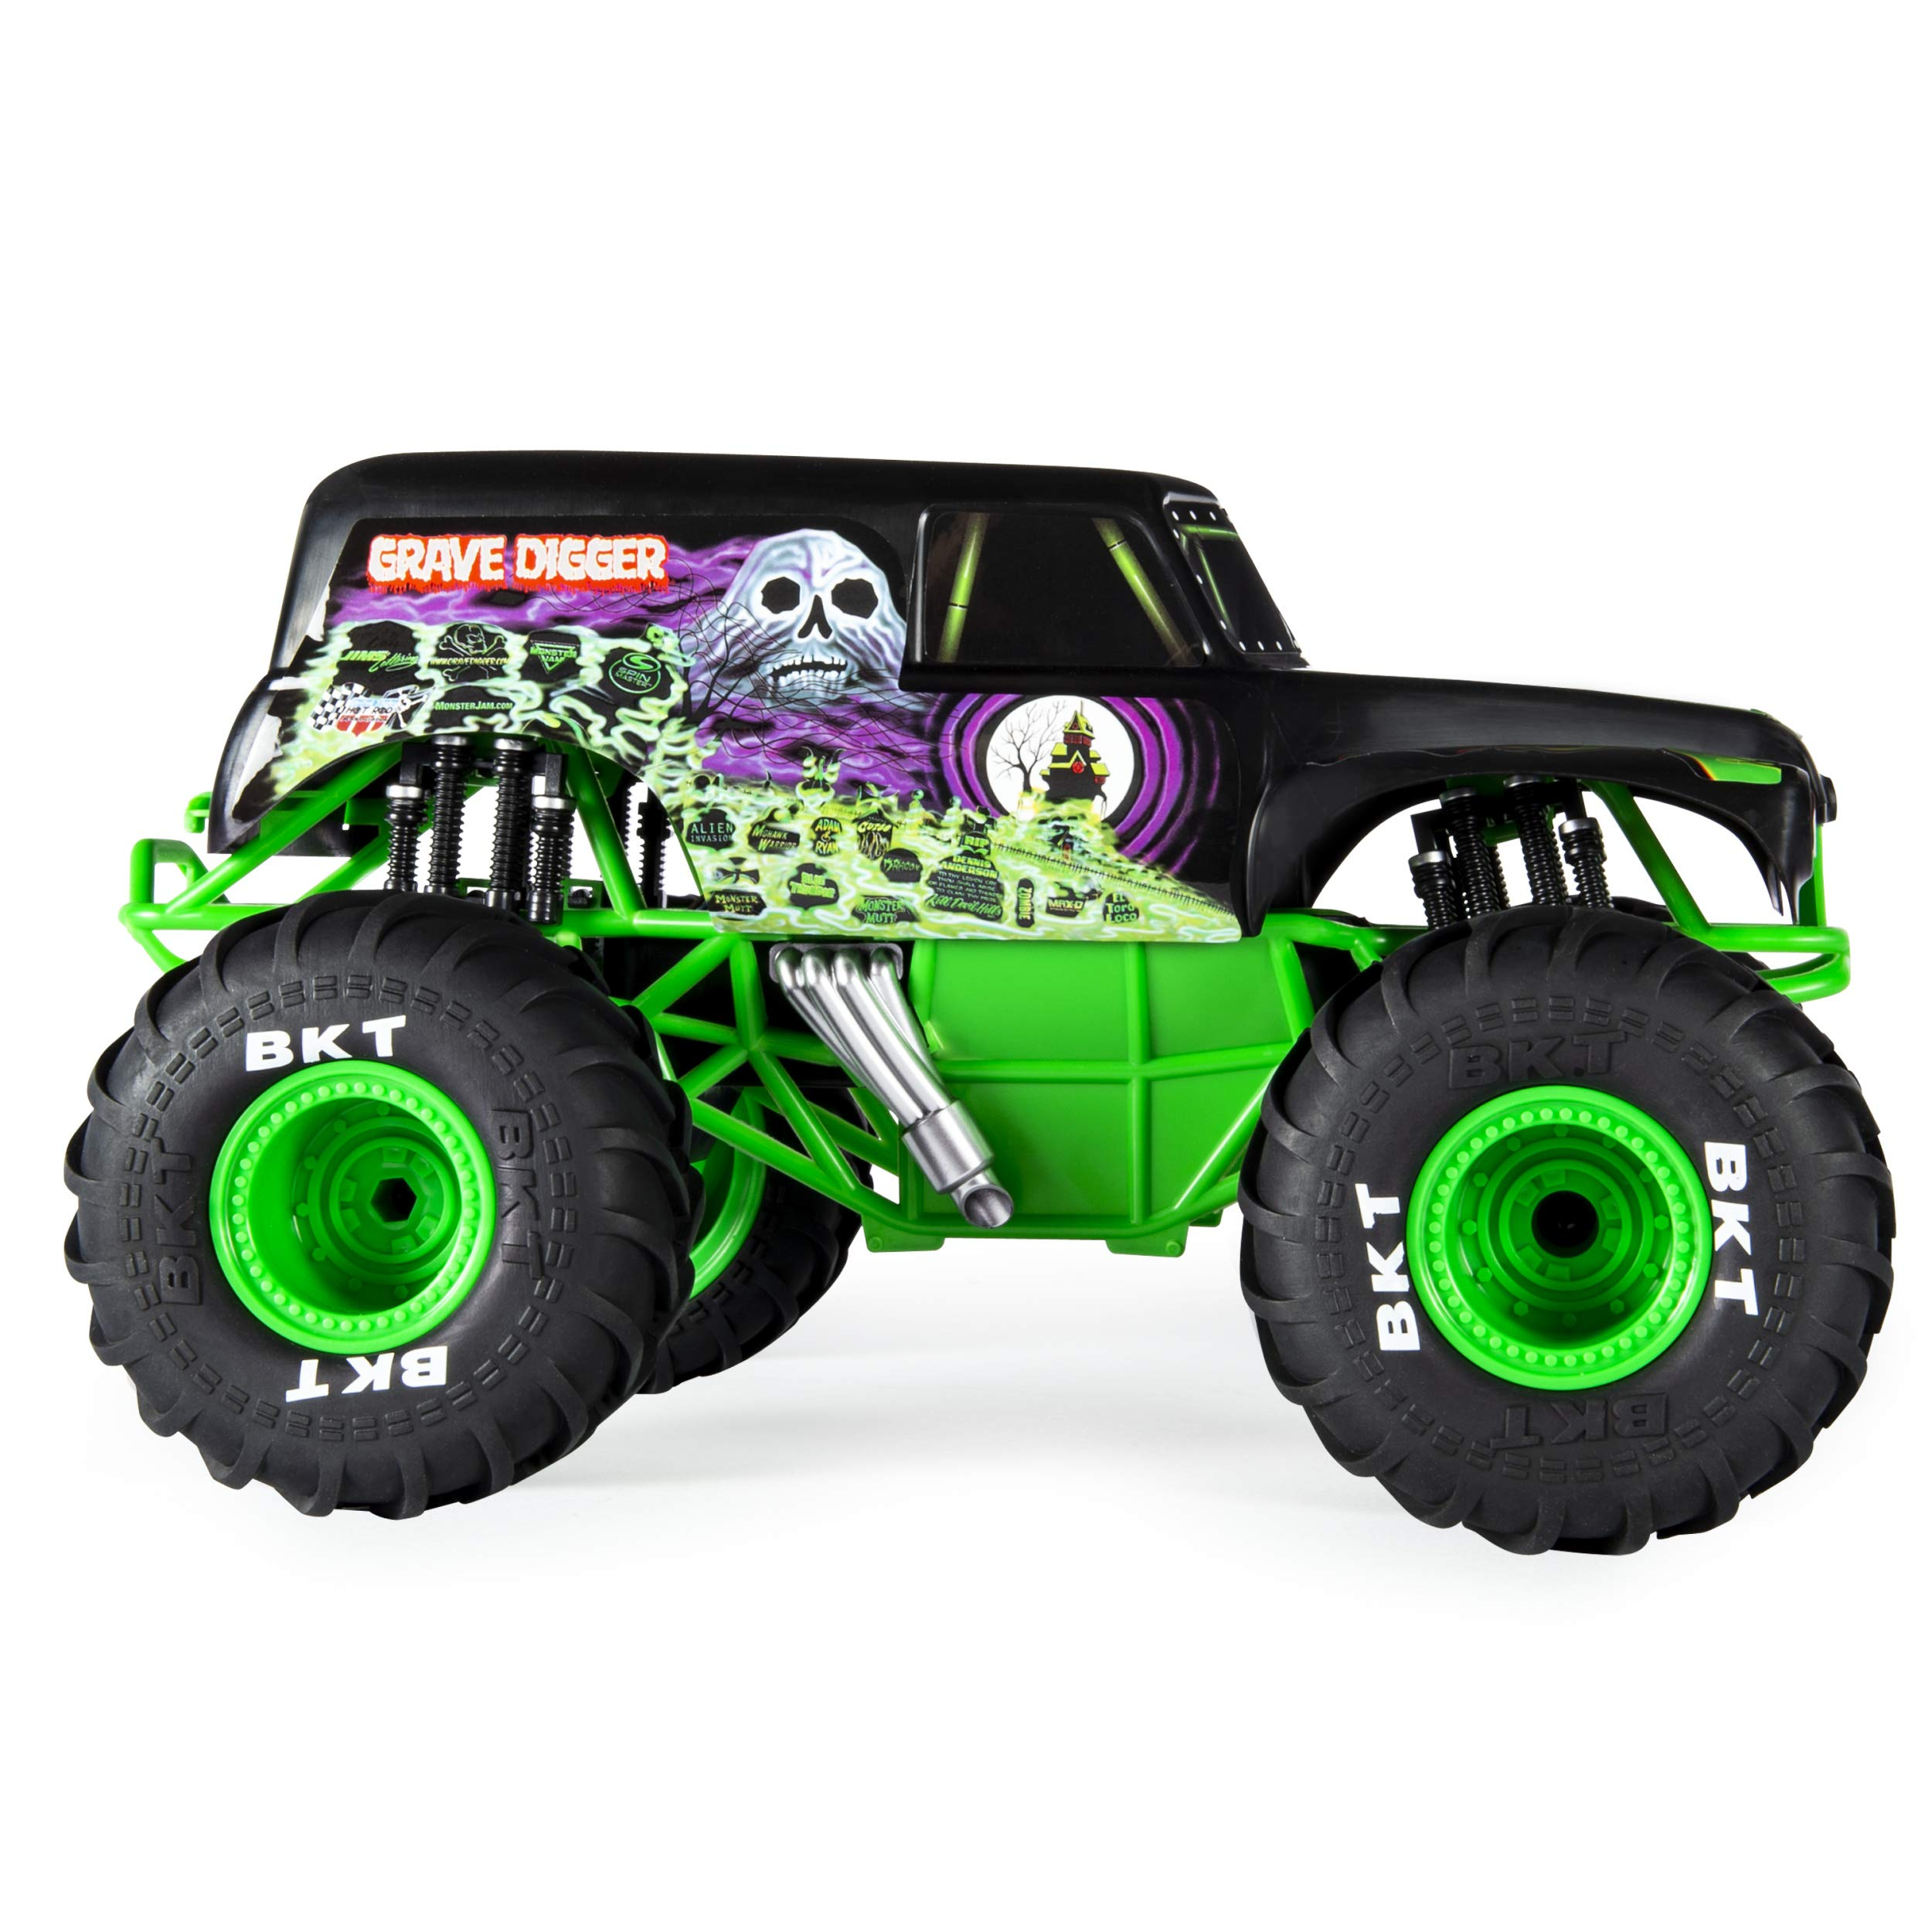 Monster Jam Official Grave Digger Remoter Control Monster Truck, 1: 15 Scale, 2.4Ghz by Monster Jam (Image #4)